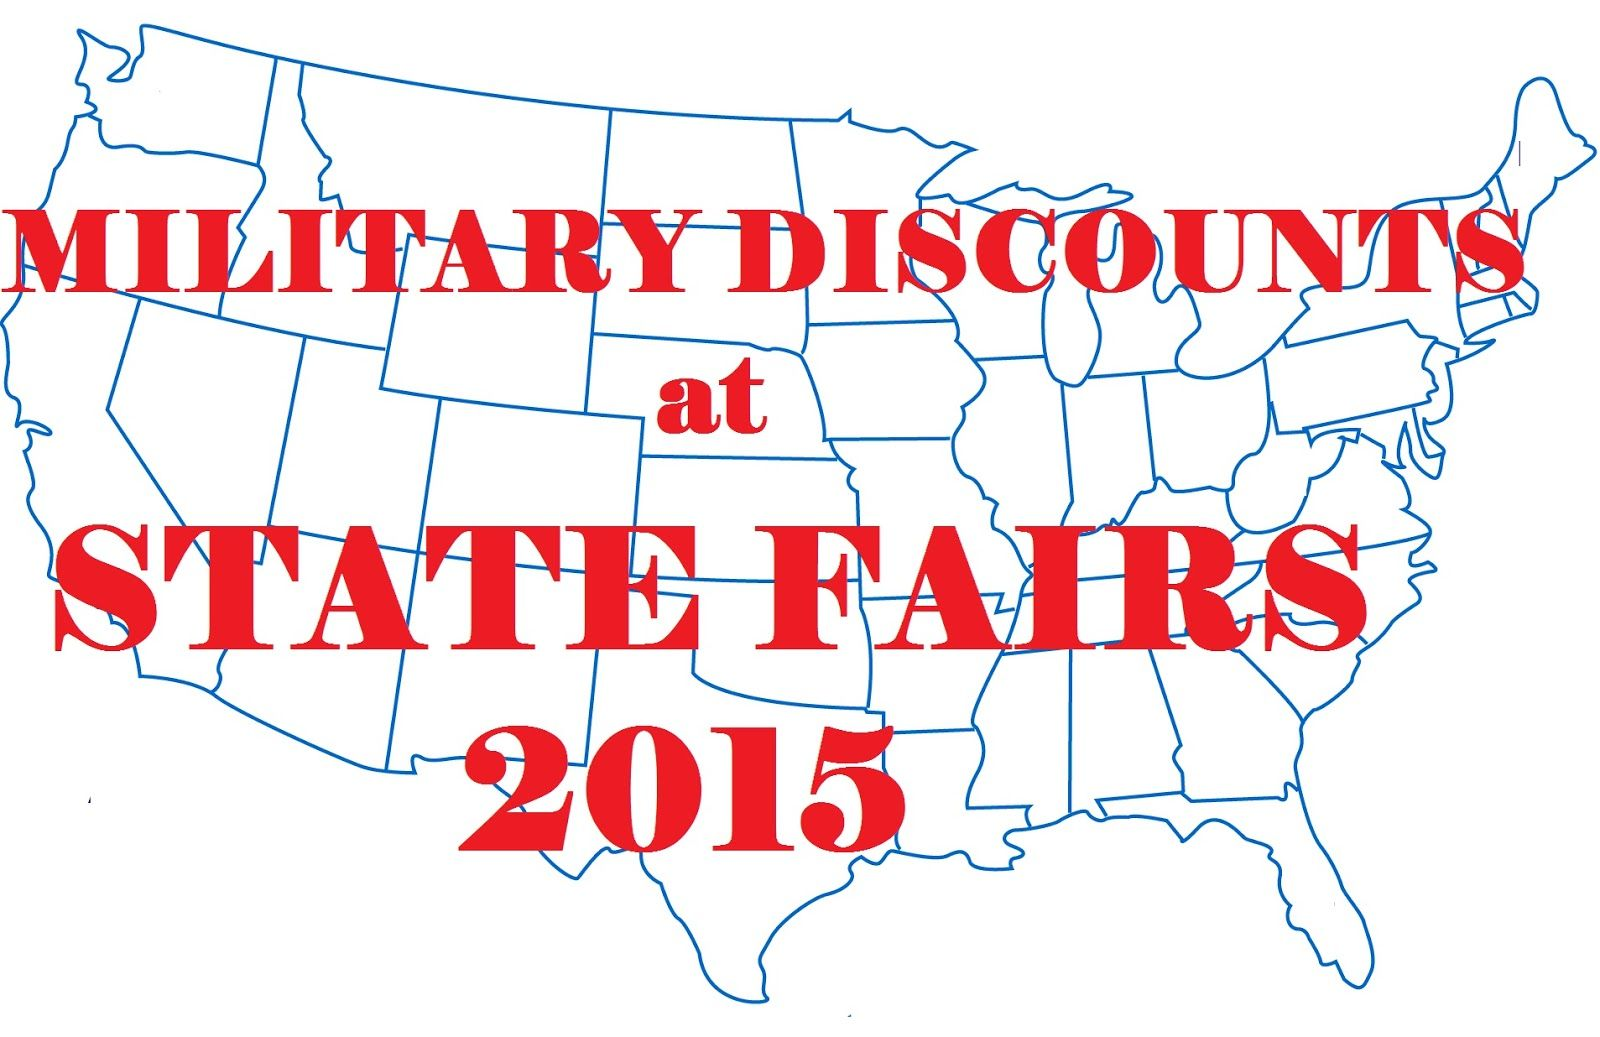 Military Discounts and Deals State fair, Military